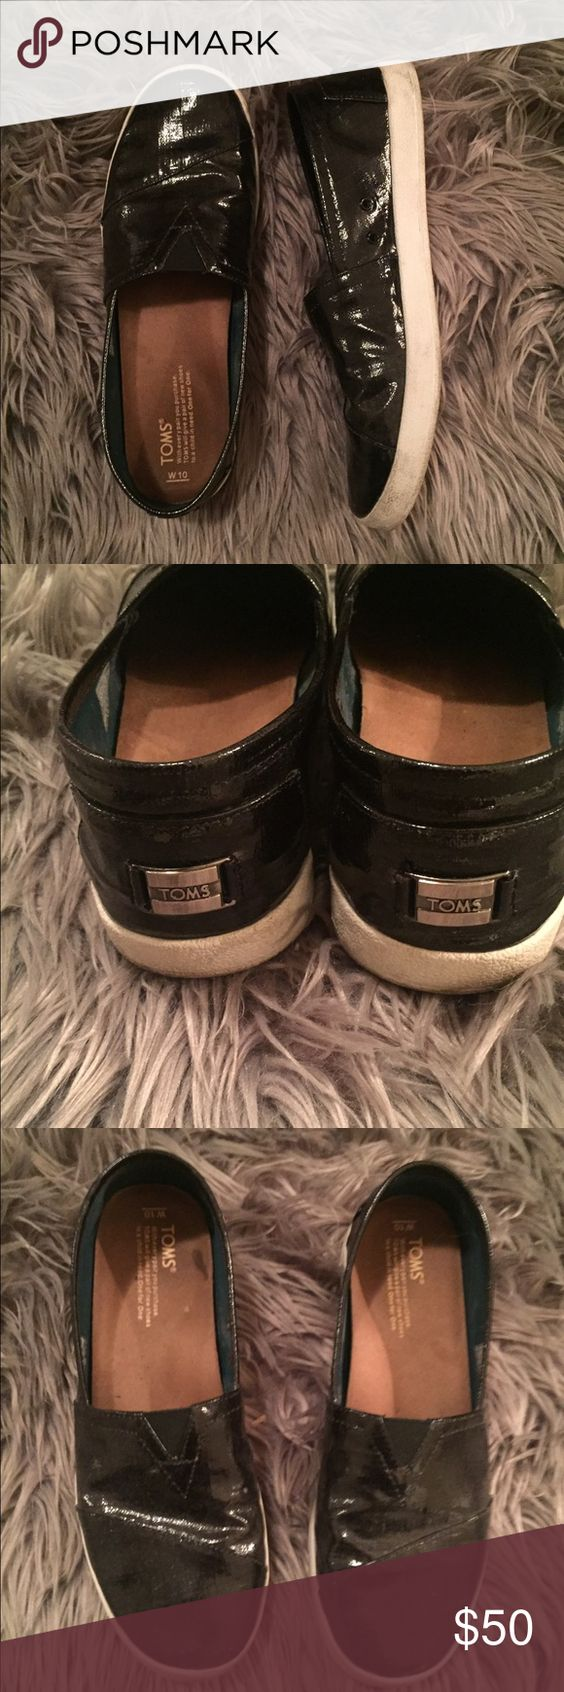 TOMS Patten Leather Shoes Worn a couple times. I DO NOT TRADE TOMS Shoes